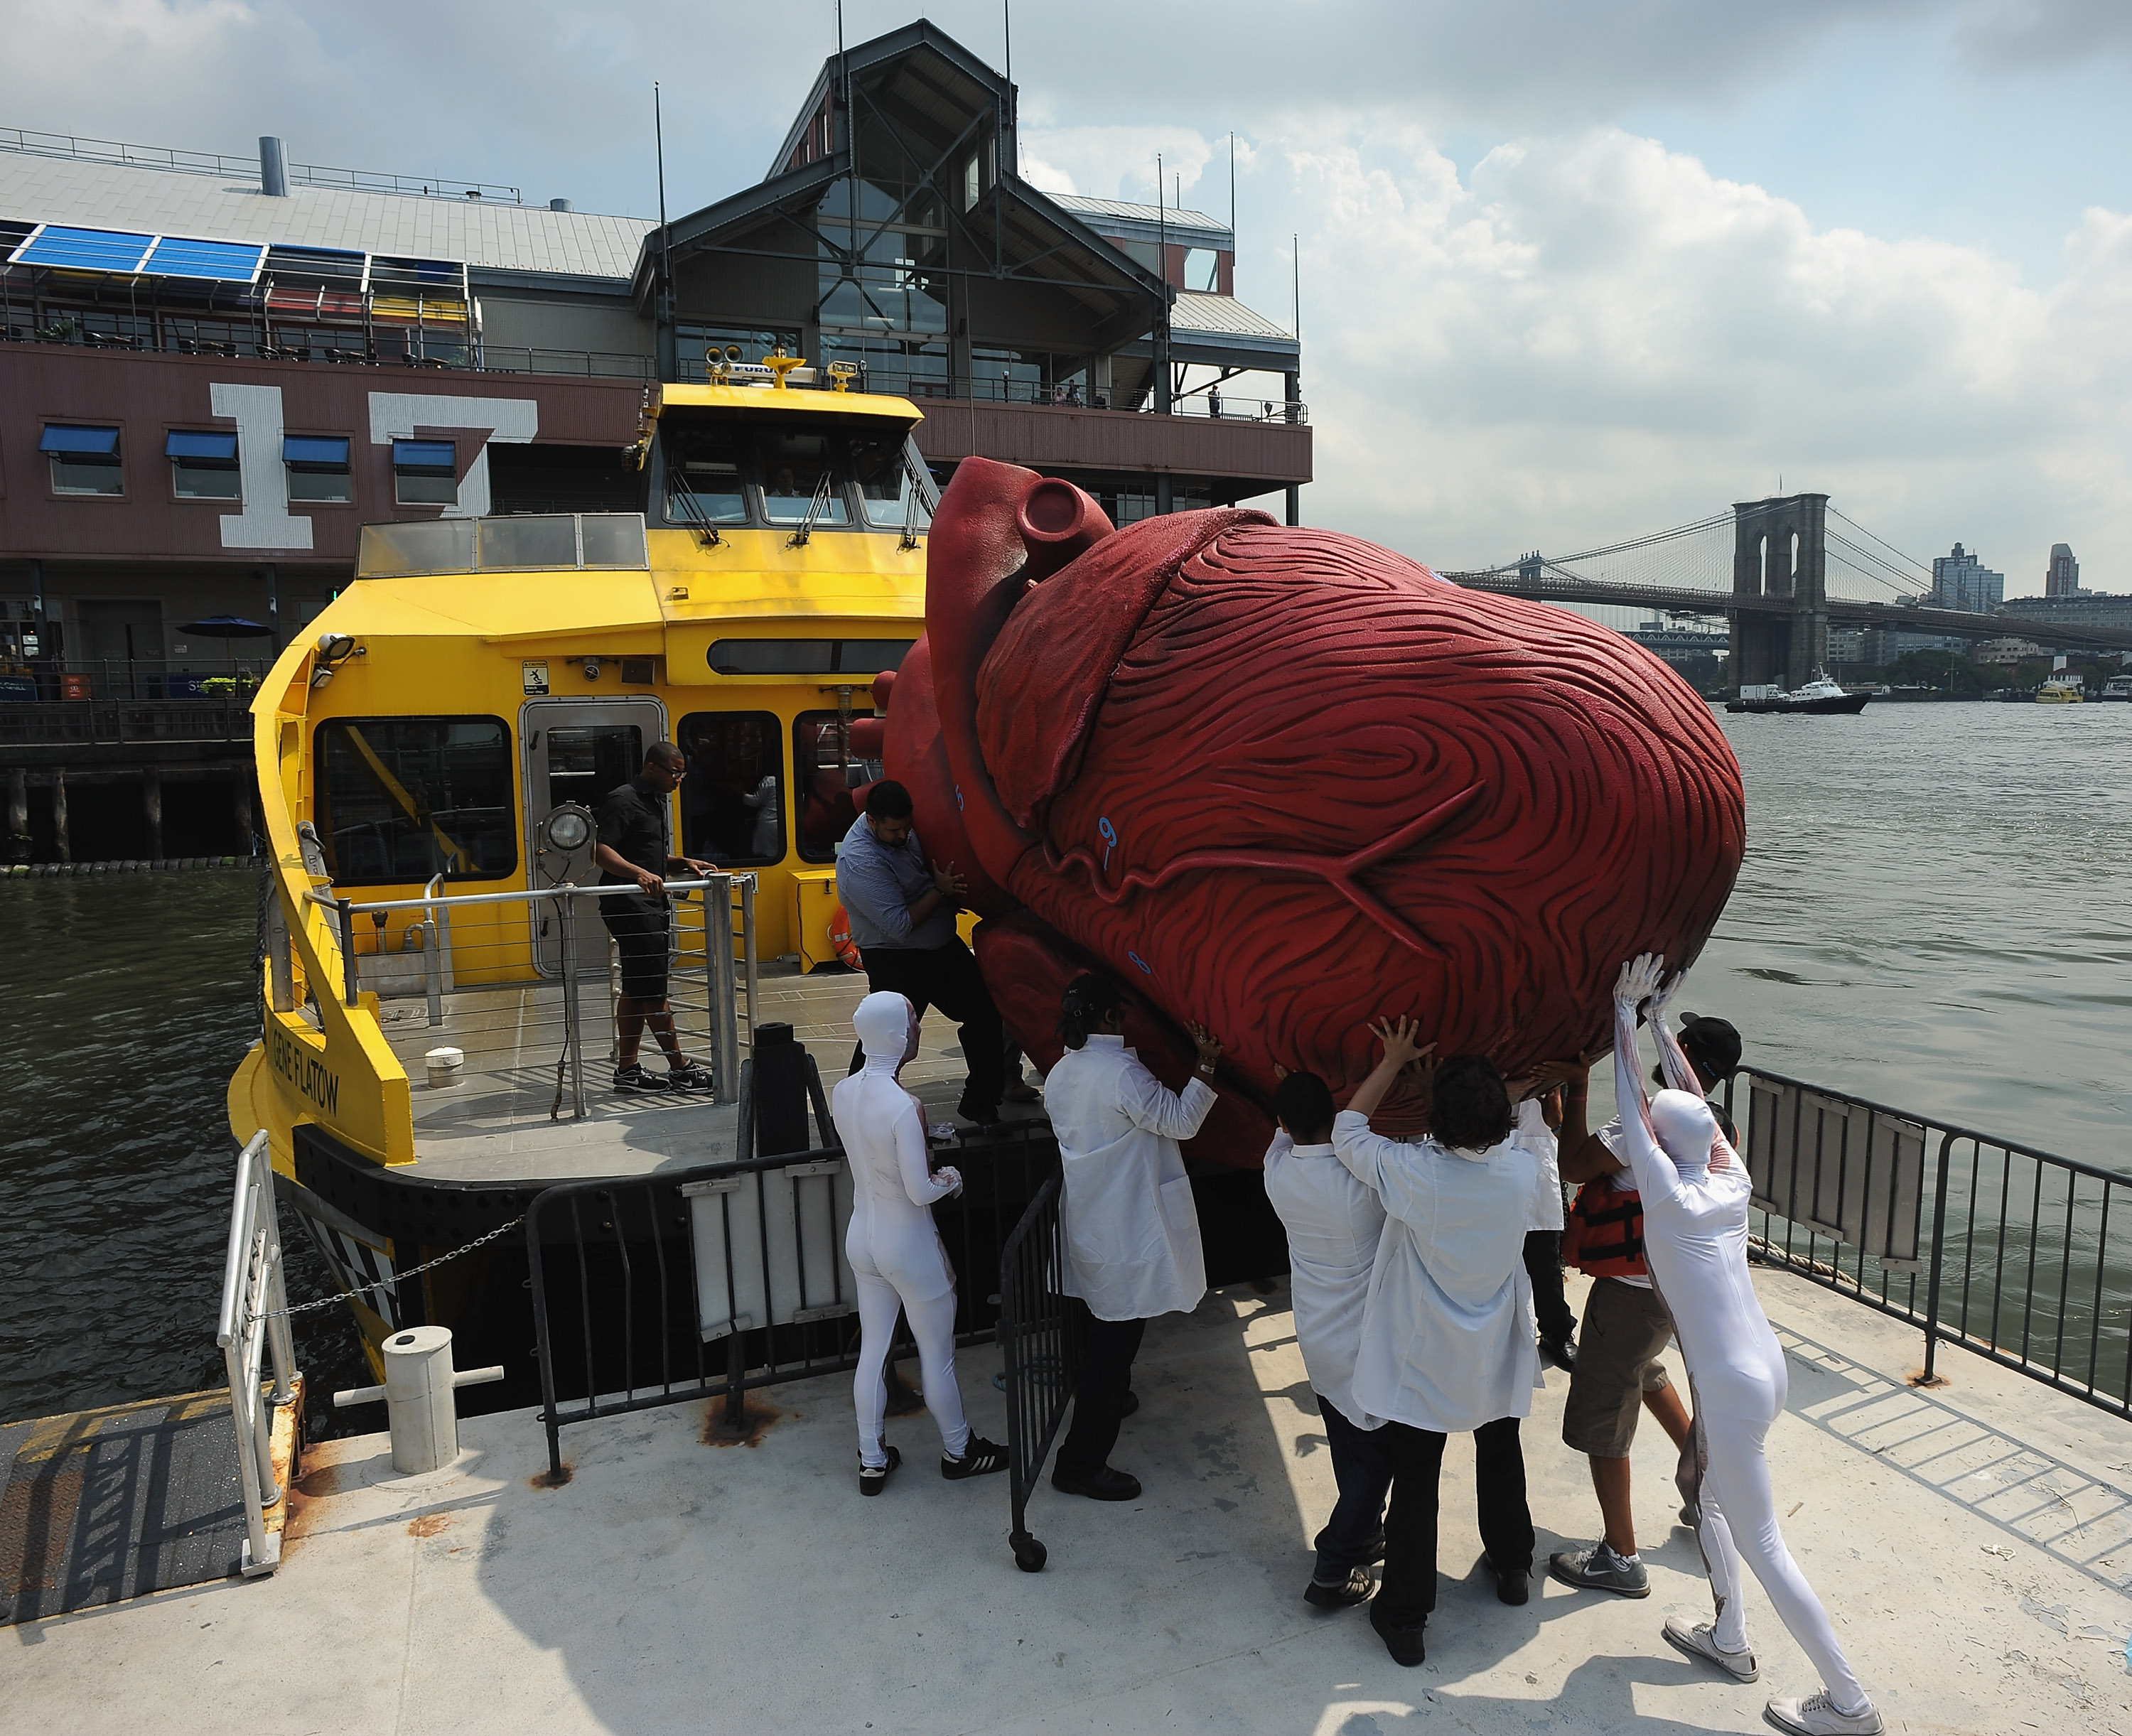 BODIES...The Exhibition Unloads Huge Heart at South Street Seaport